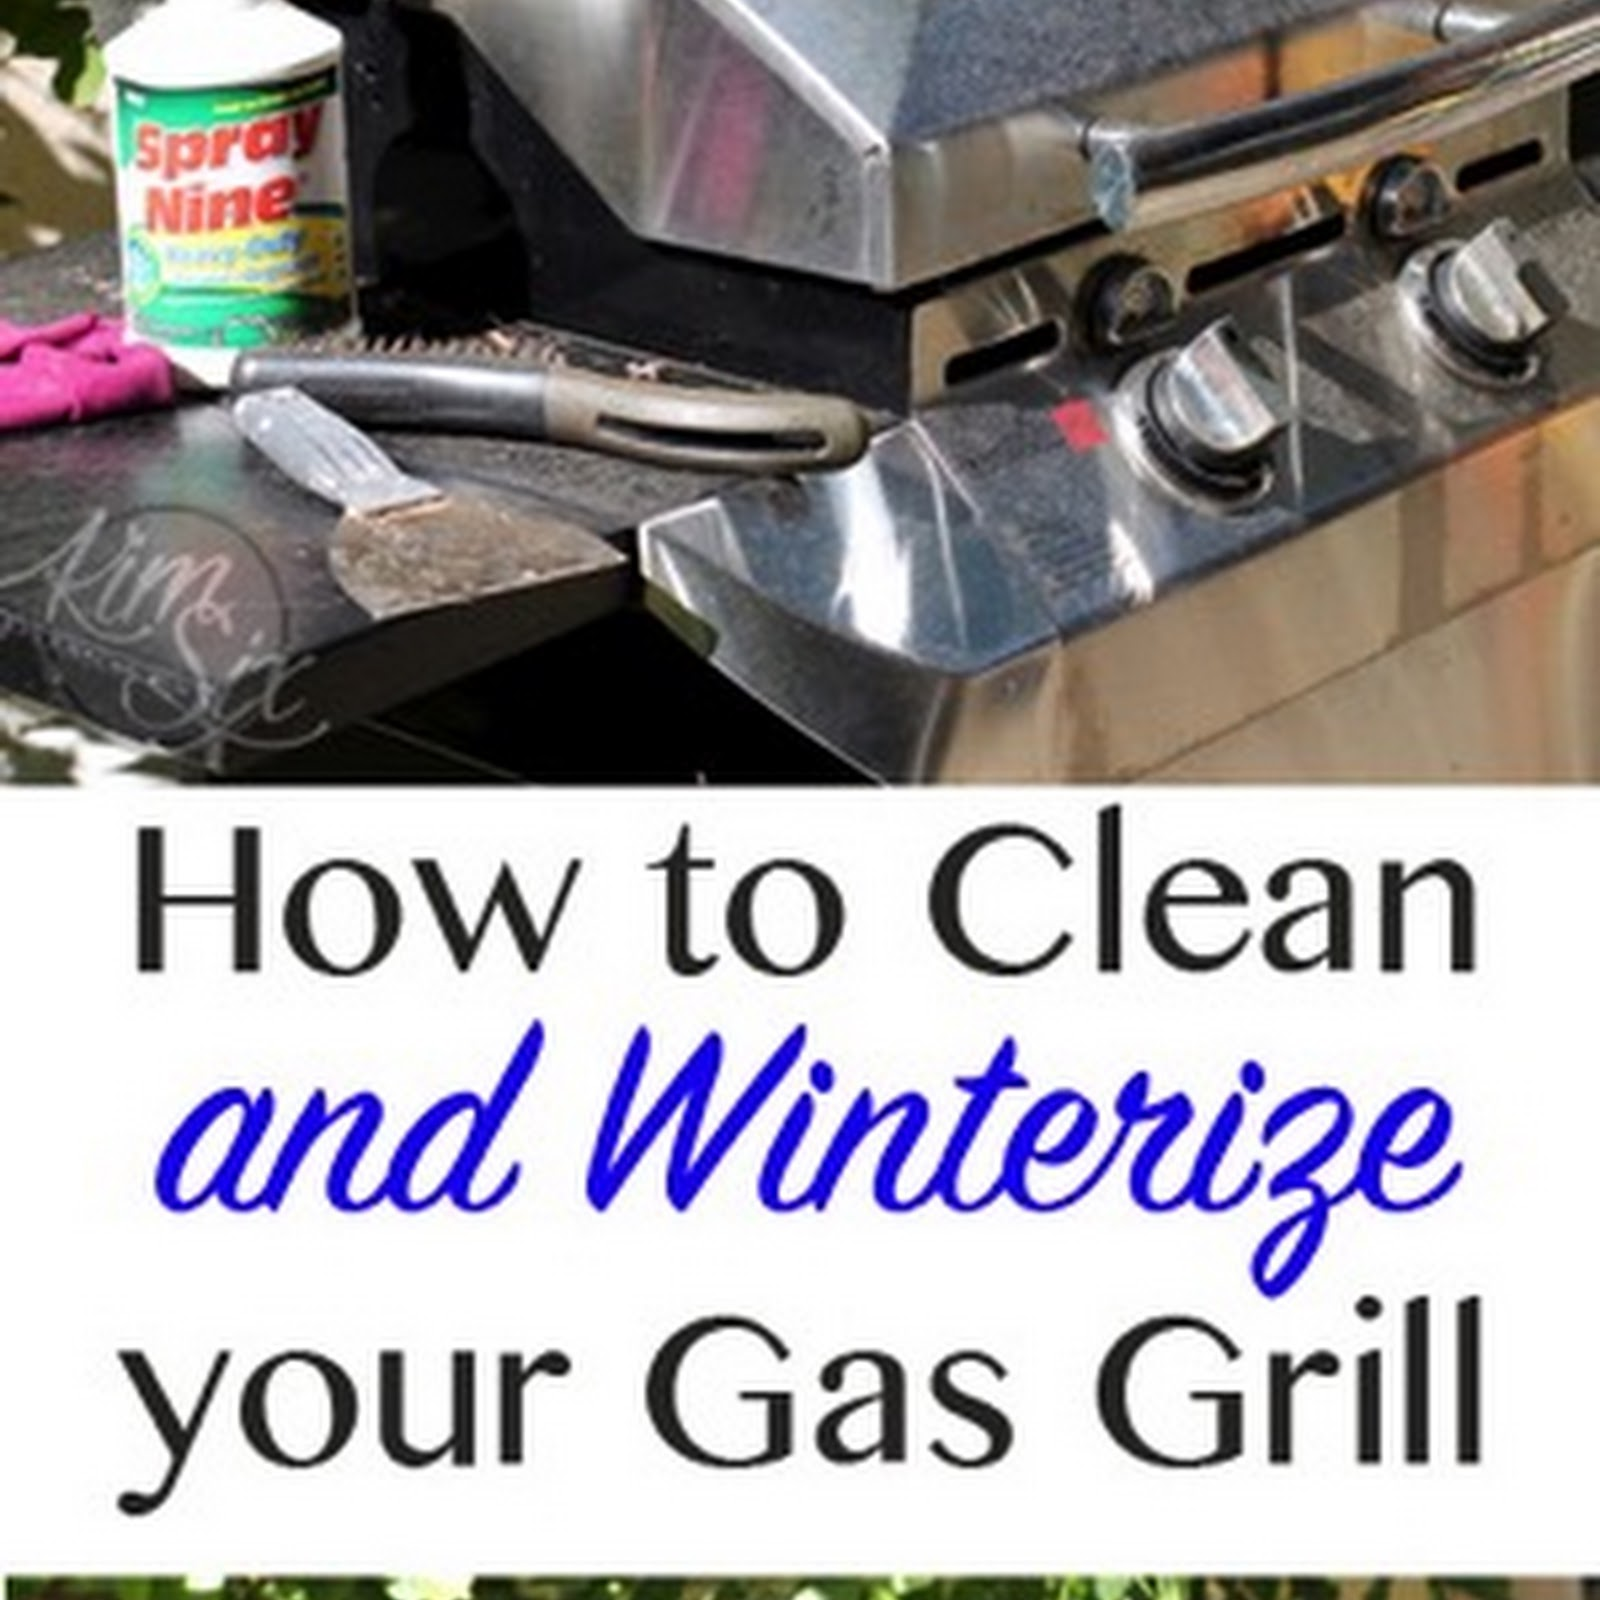 How to Clean and Winterize A Gas Grill